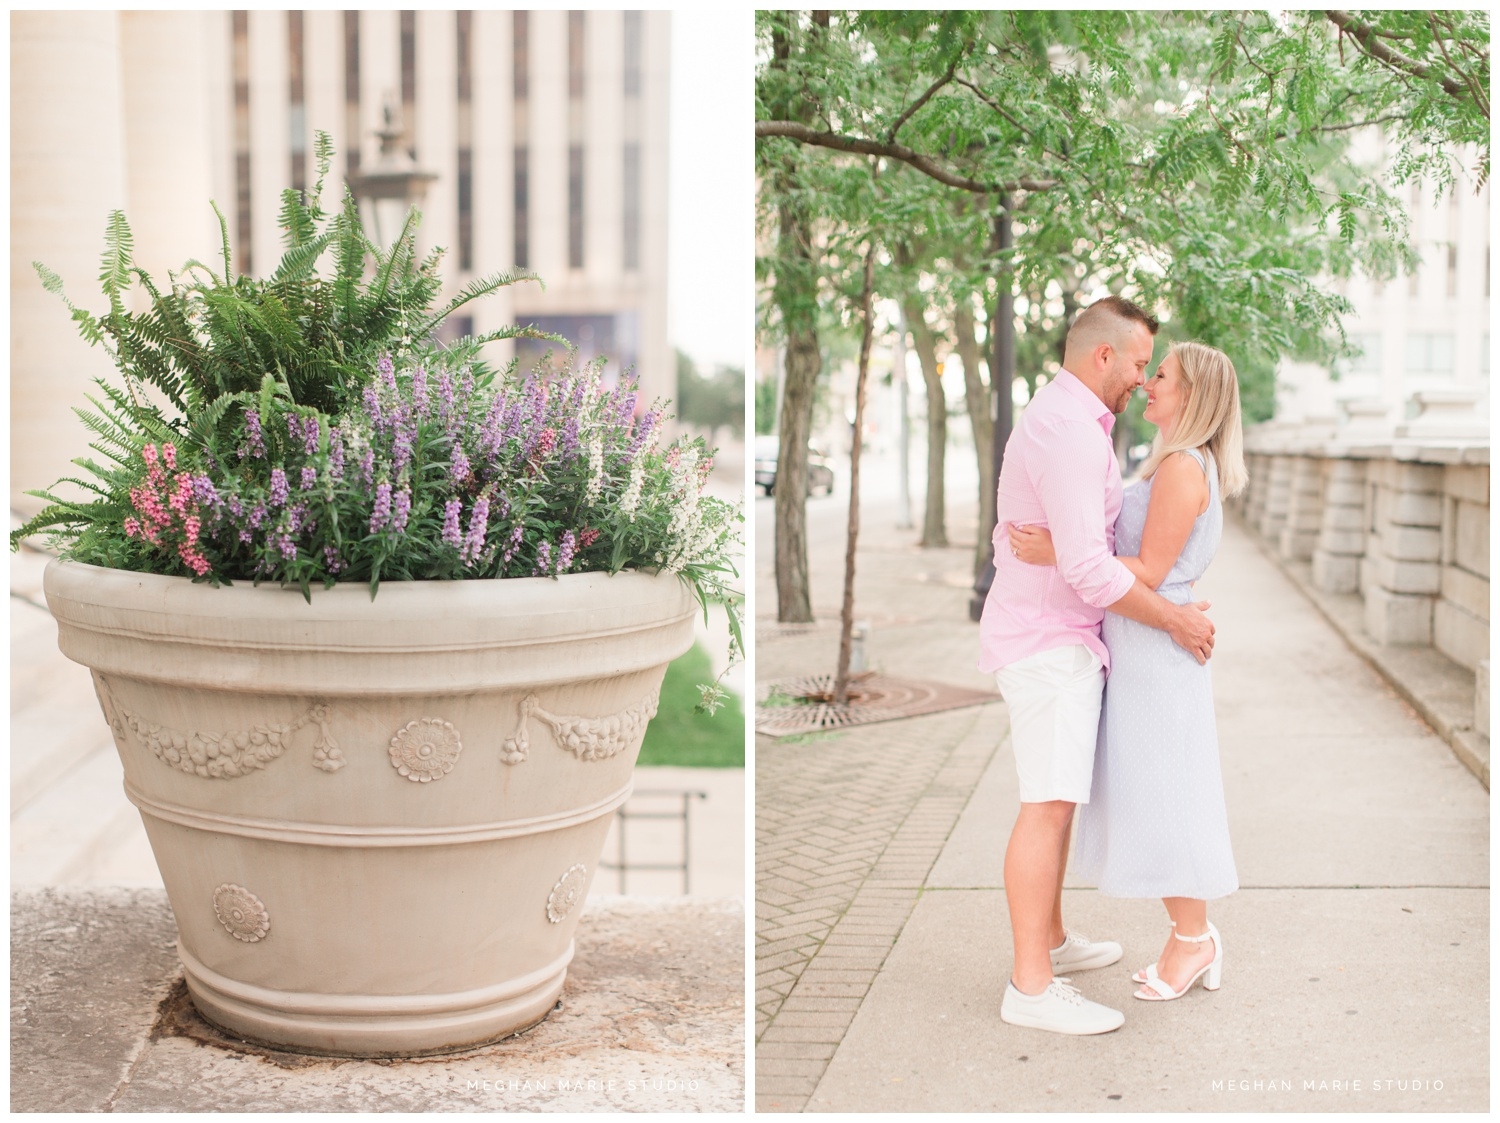 meghan marie studio ohio dayton troy photographer wedding photography engagement alex kaila family honeycreek preserve champagne downtown courthouse urban rural earth toned nature woods barn country city stone fountain elegant_0453.jpg